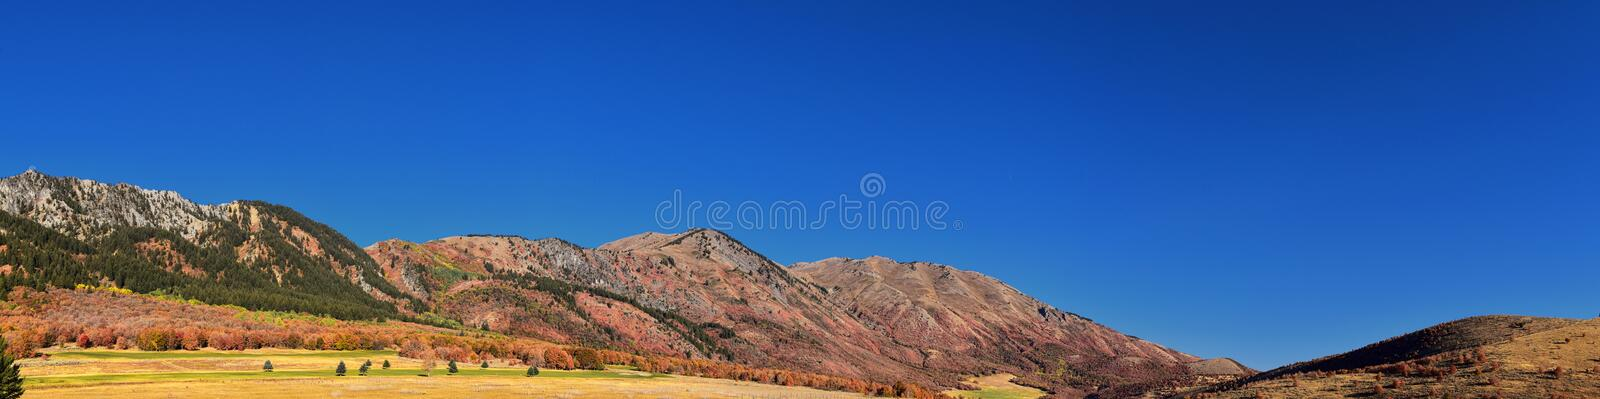 Box Elder Canyon landscape views, popularly known as Sardine Canyon, North of Brigham City within the western slopes of the Wellsv. Ille Mountains, by Logan in royalty free stock photography